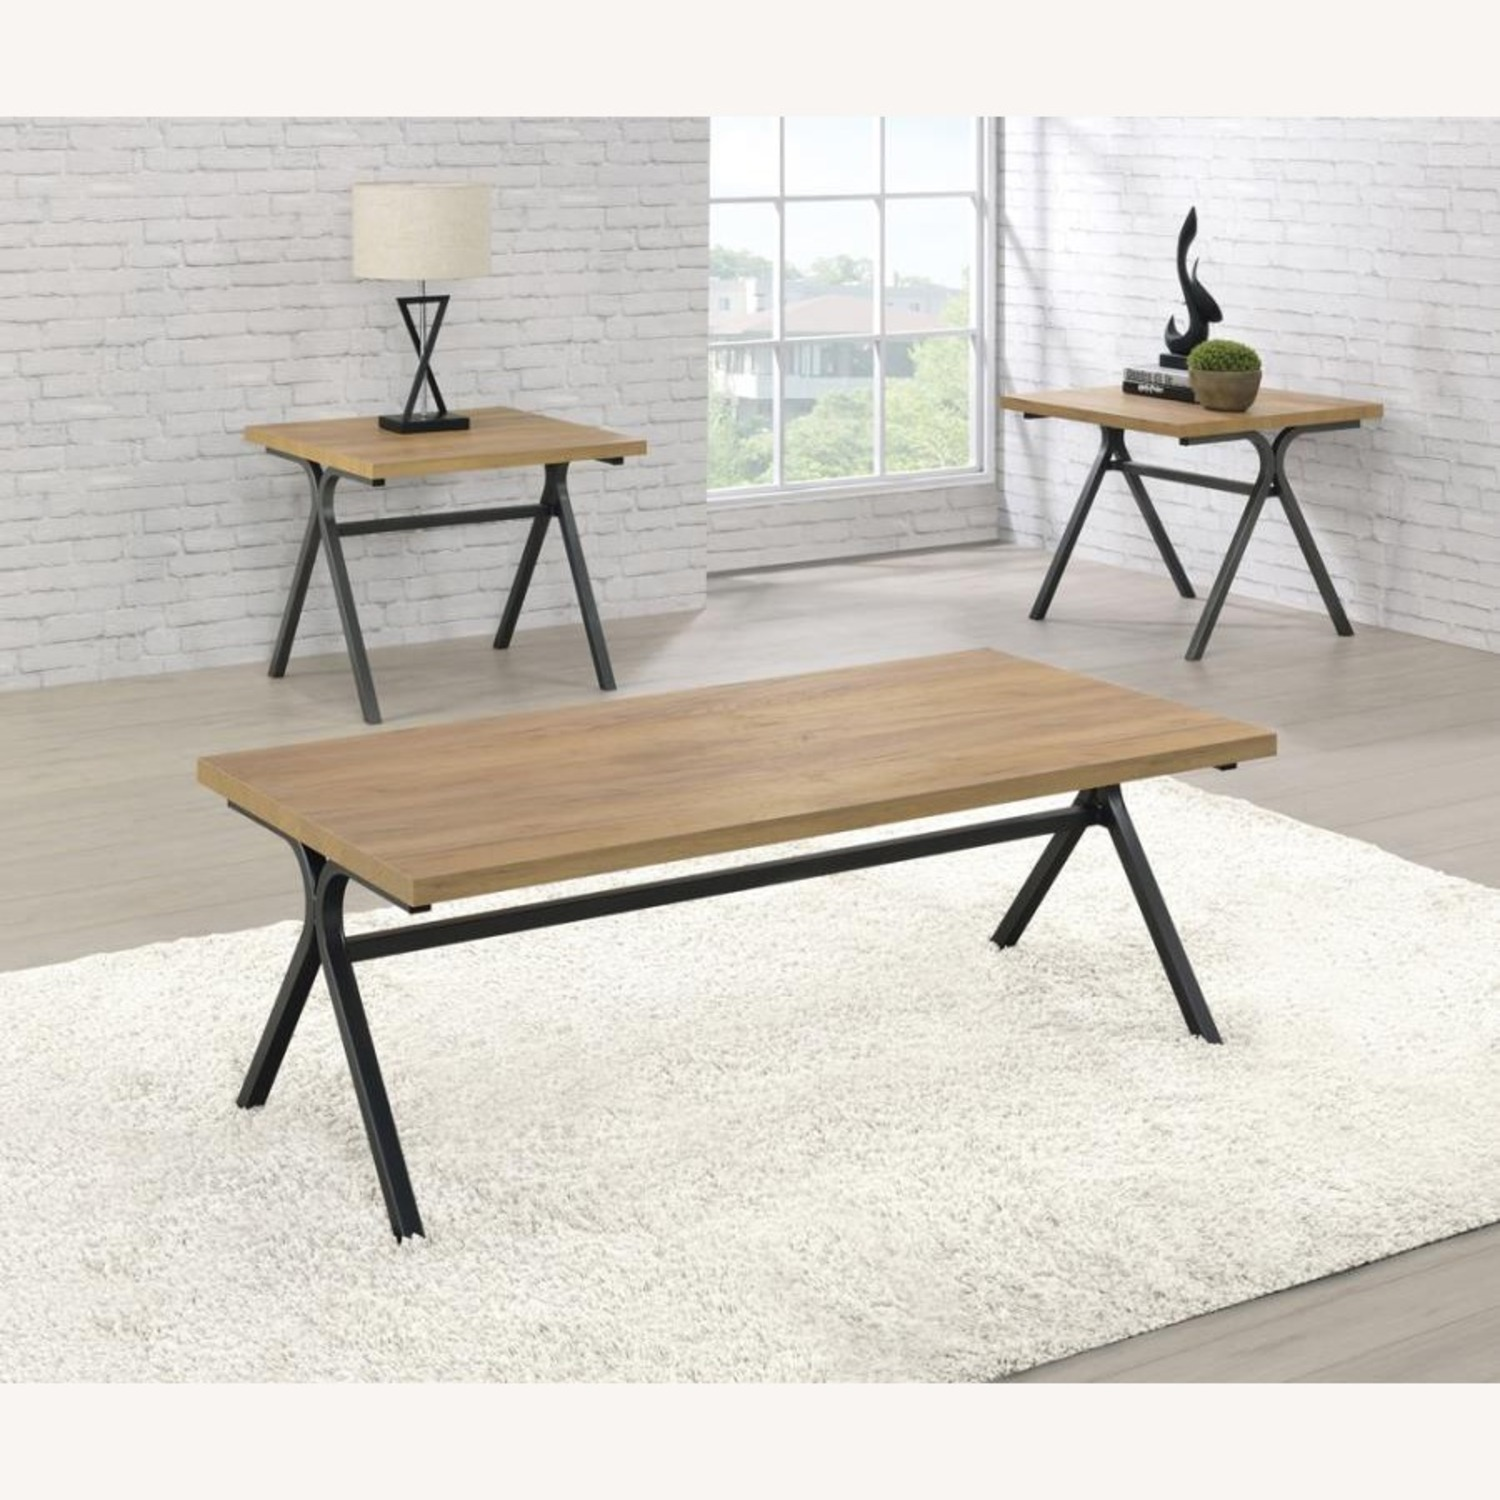 3-Piece Occasional Table Set In Golden Oak Finish - image-1